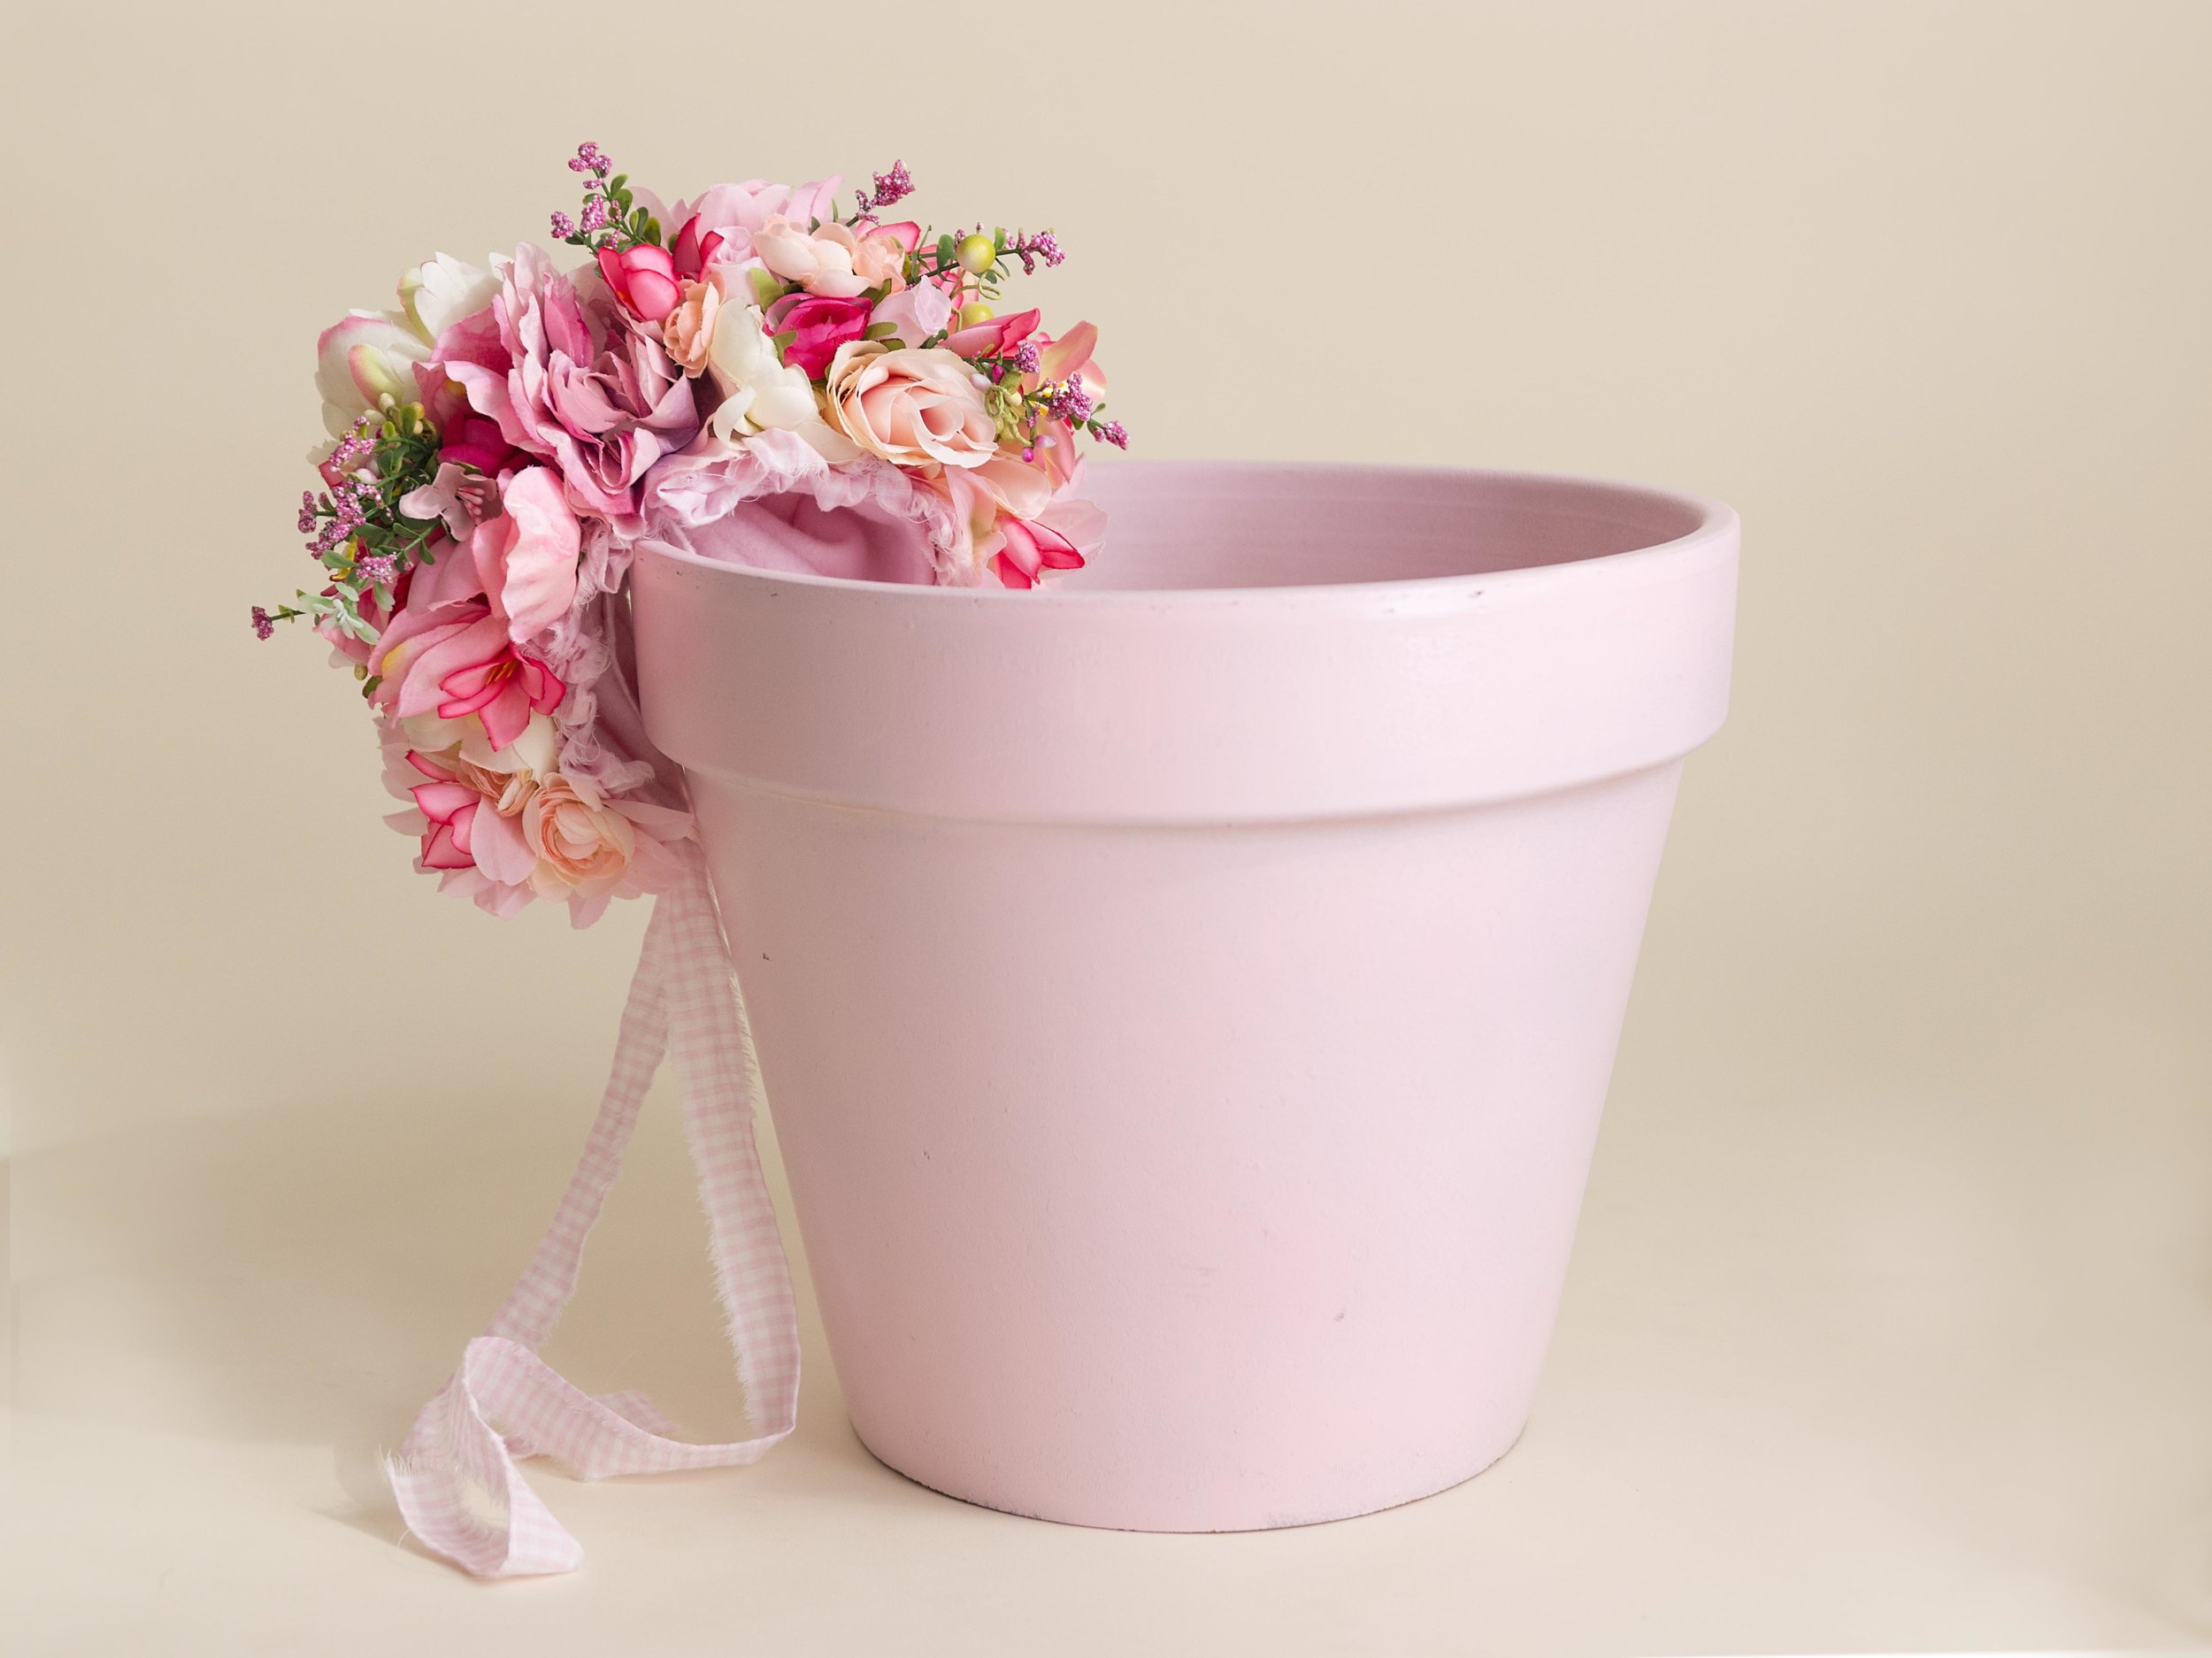 One of our most popular props for baby girls is this flower pot and flower bonnet.  The girls look darling in the pot with the flower bonnet on.